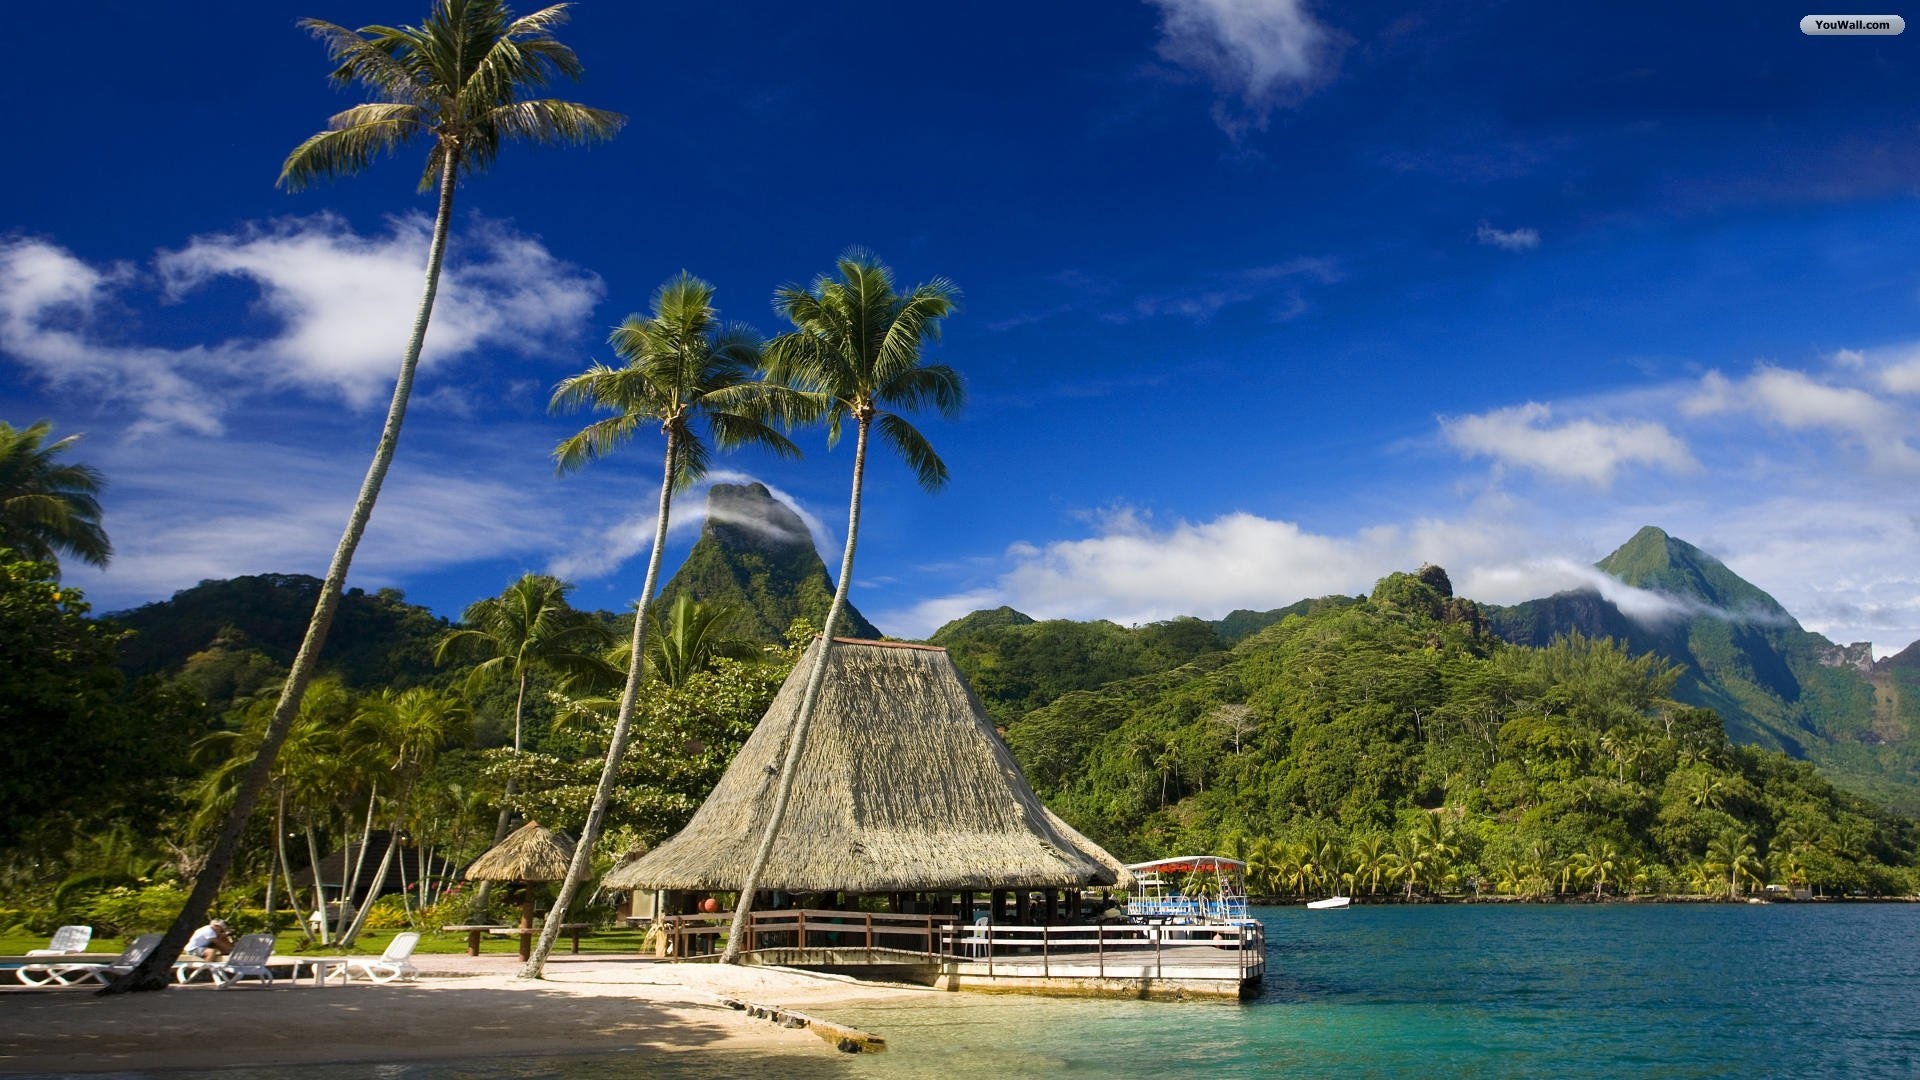 hd tropical island beach paradise wallpapers and backgrounds 1920x1080